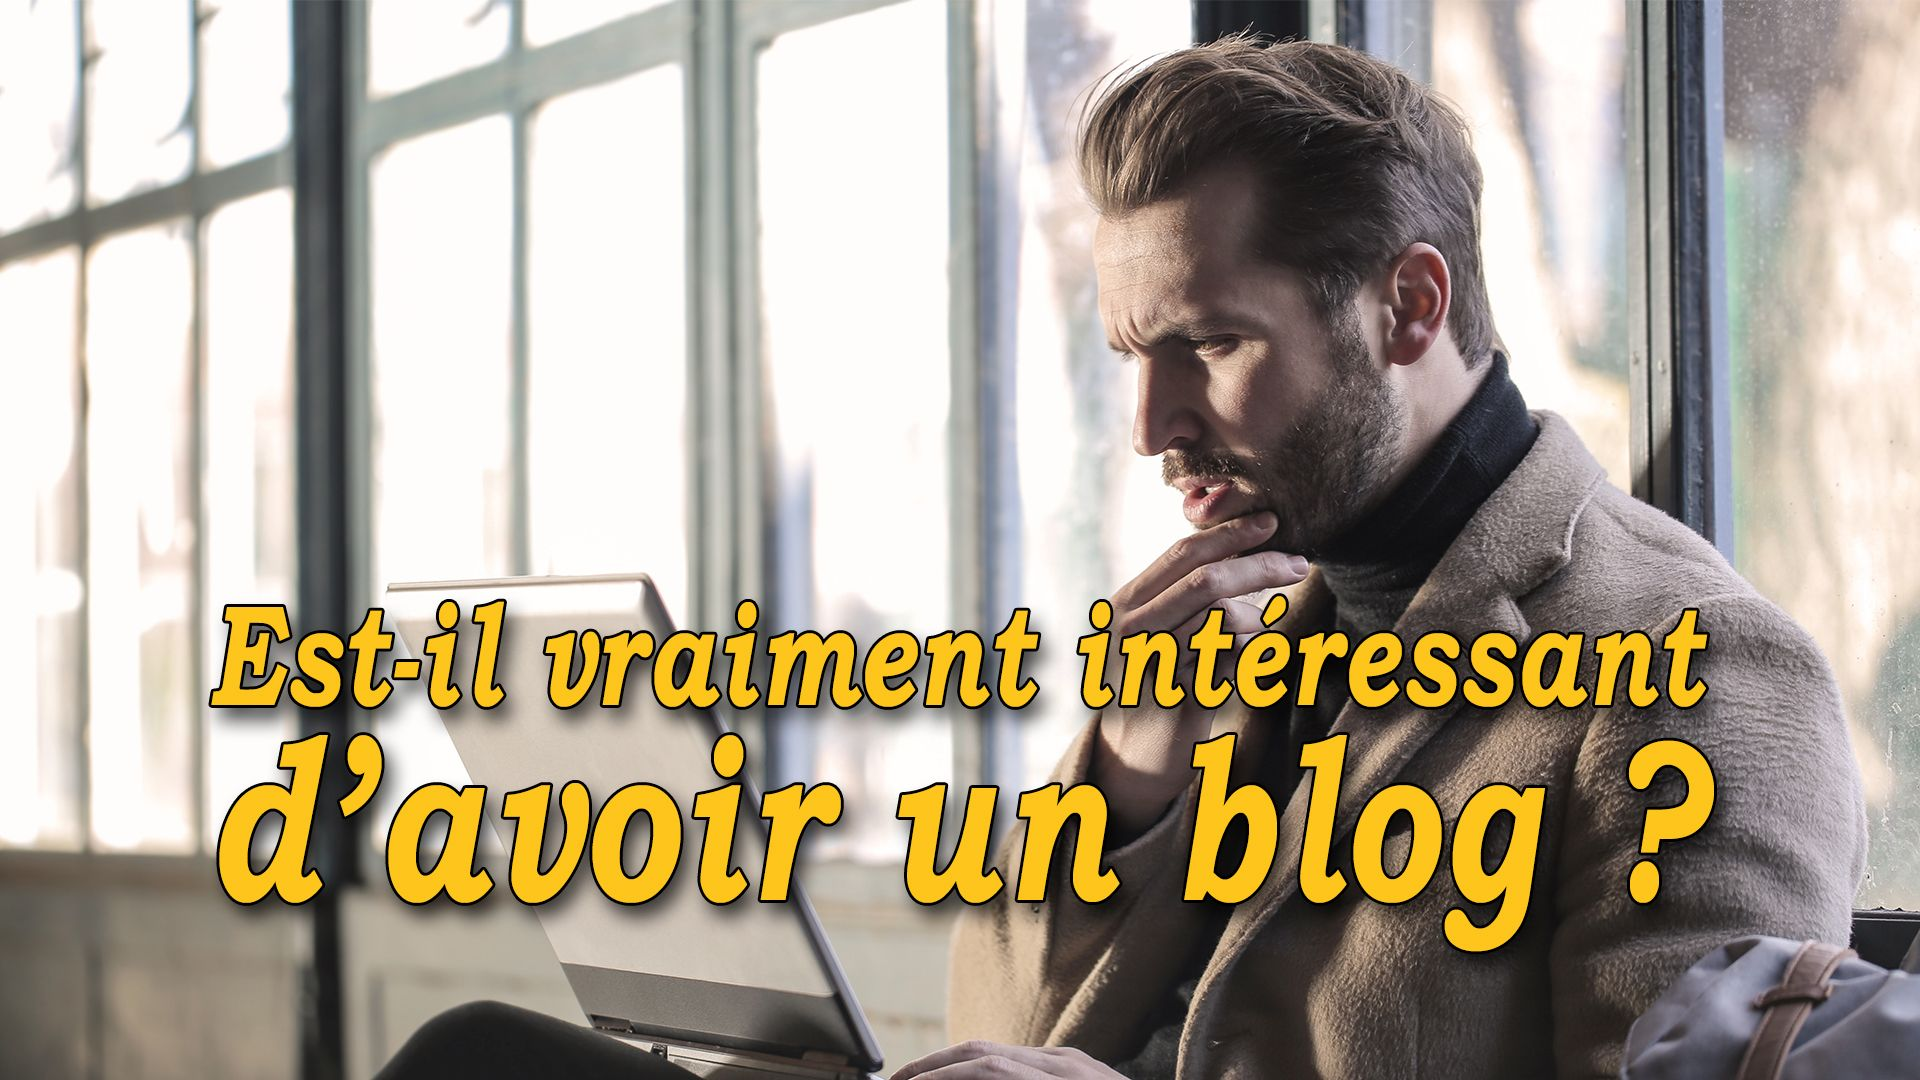 Est-il vraiment intéressant d'avoir un blog ? #GrowthHacking #WebMarketing #FormationGrowthHacking #CentreDeFormationFrance #TunnelAARRR #AARRR #SocialMedia #CommunityManagement #SEO #MarketingDigital #SiteWeb #blog #blogging